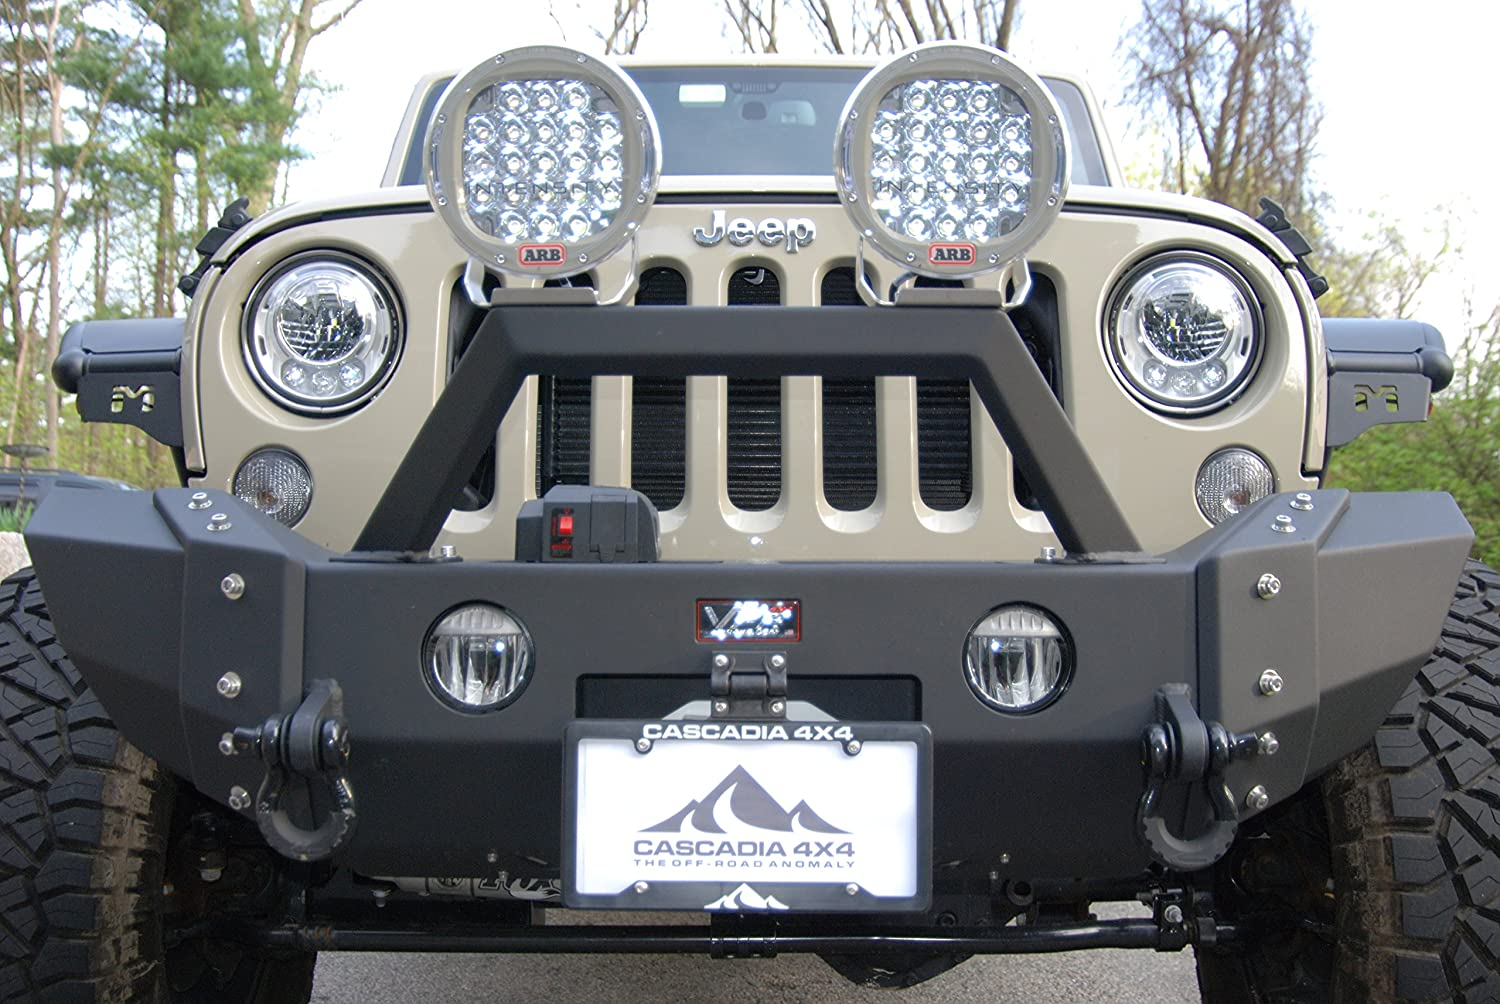 etc Made in USA//Canada Trailer Hitch Flip up//Flip Down License Plate Mounting System for Winch Cascadia 4x4 Flipster Universal